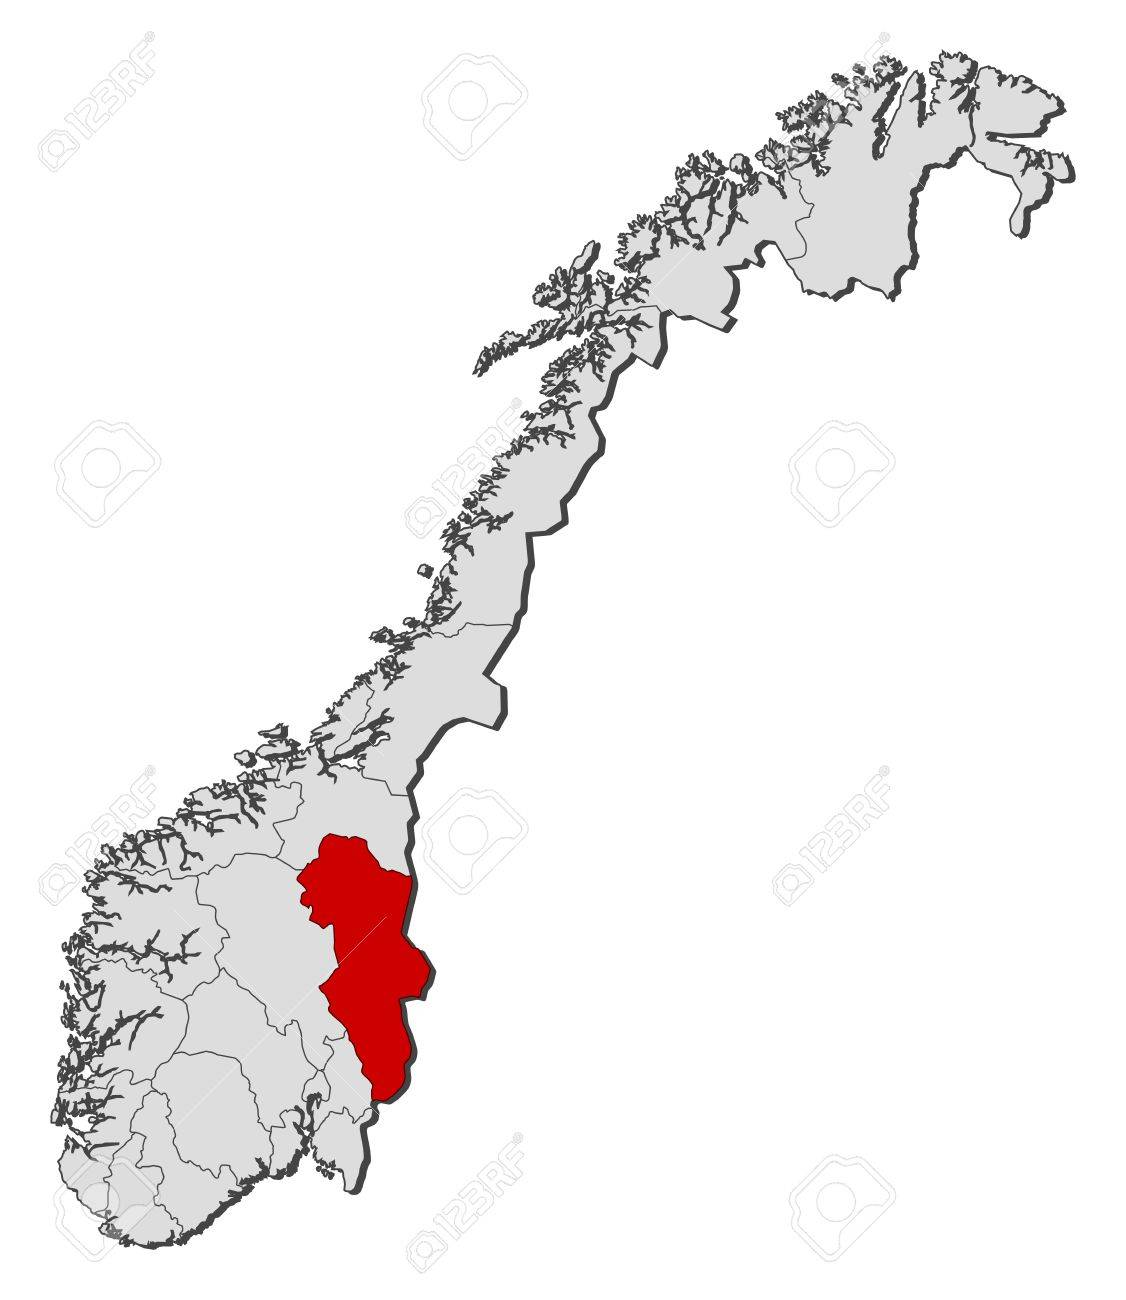 Political Map Of Norway With The Several Counties Where Hedmark - Norway map counties